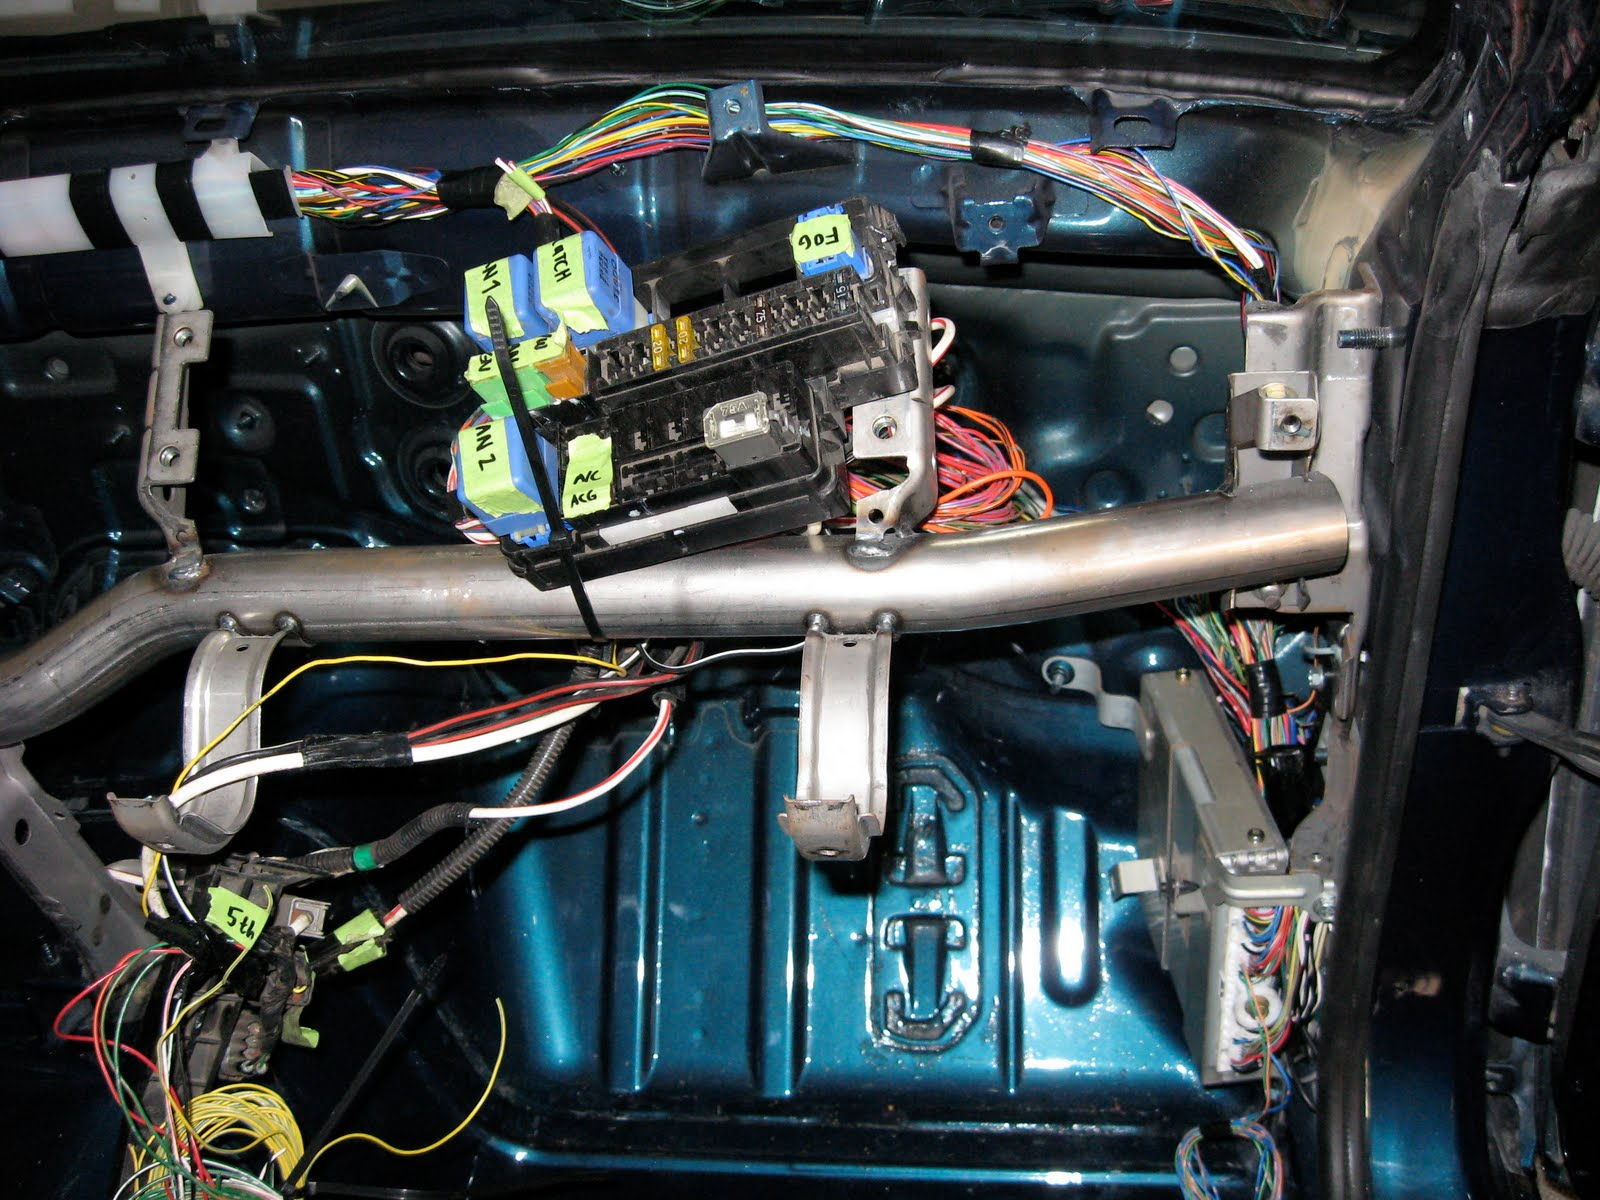 S13 Sr20det Into S14 Wiring Diagram Fuse Box Tuck 17 Images Diagrams Img 1061 240sx Harness 1994 Nissan Under Hood